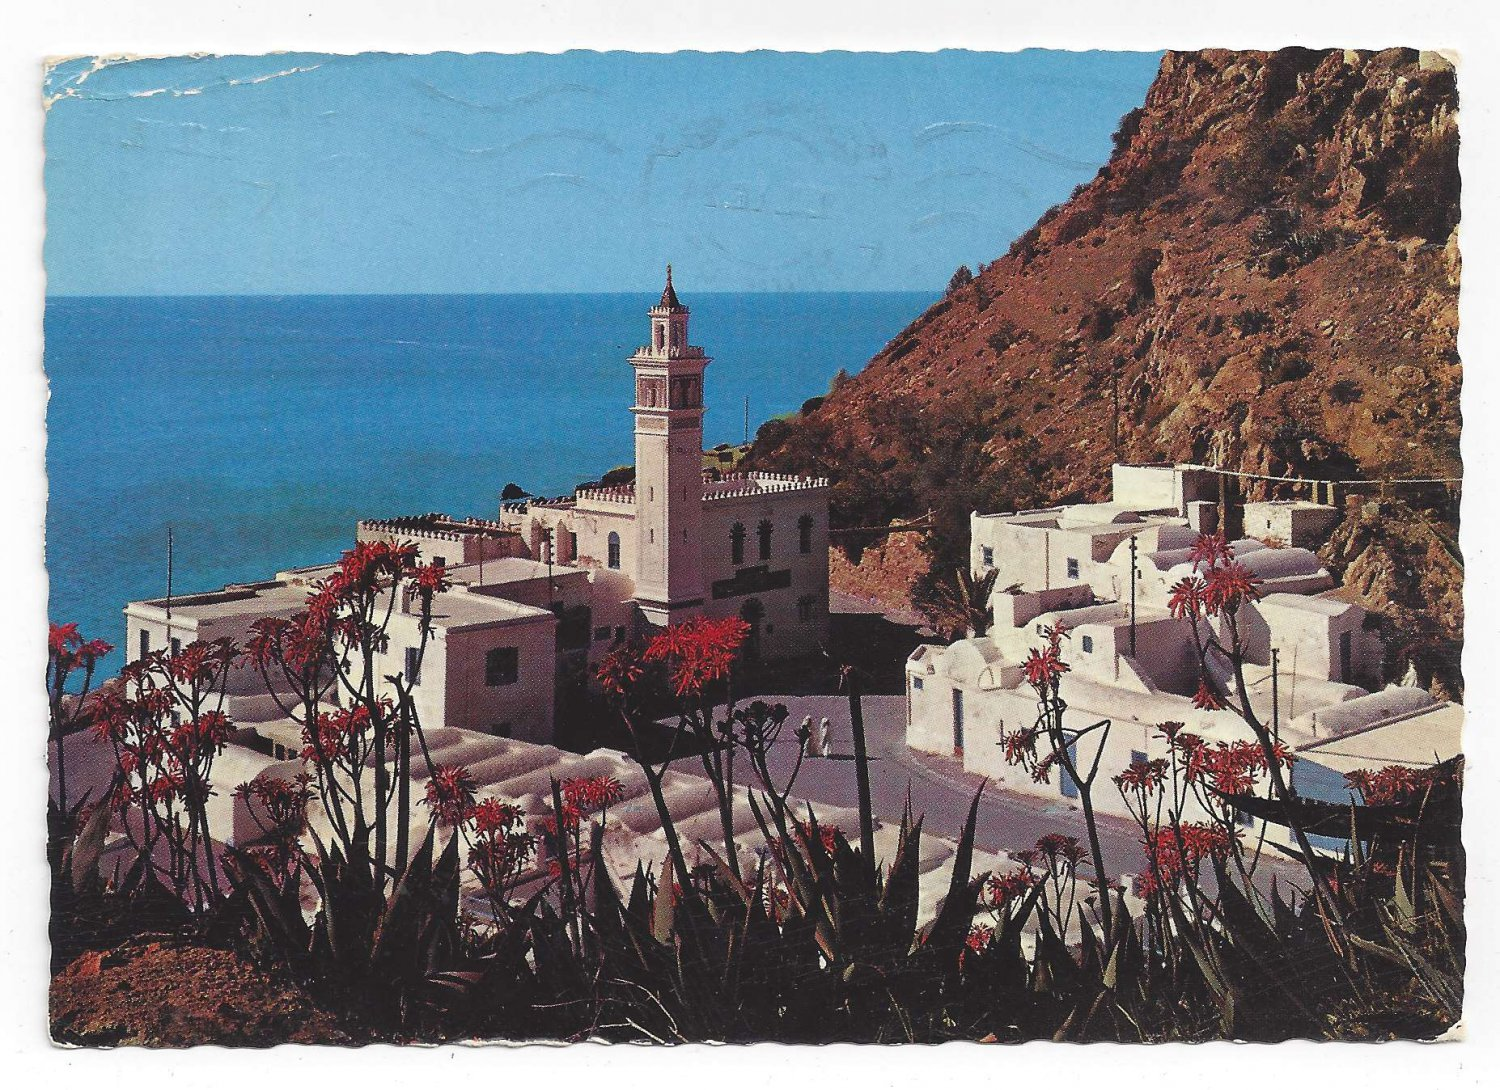 Africa Tunisia Korbous Spa Thermal Hot Springs Birds Eye View 4X6 Postcard